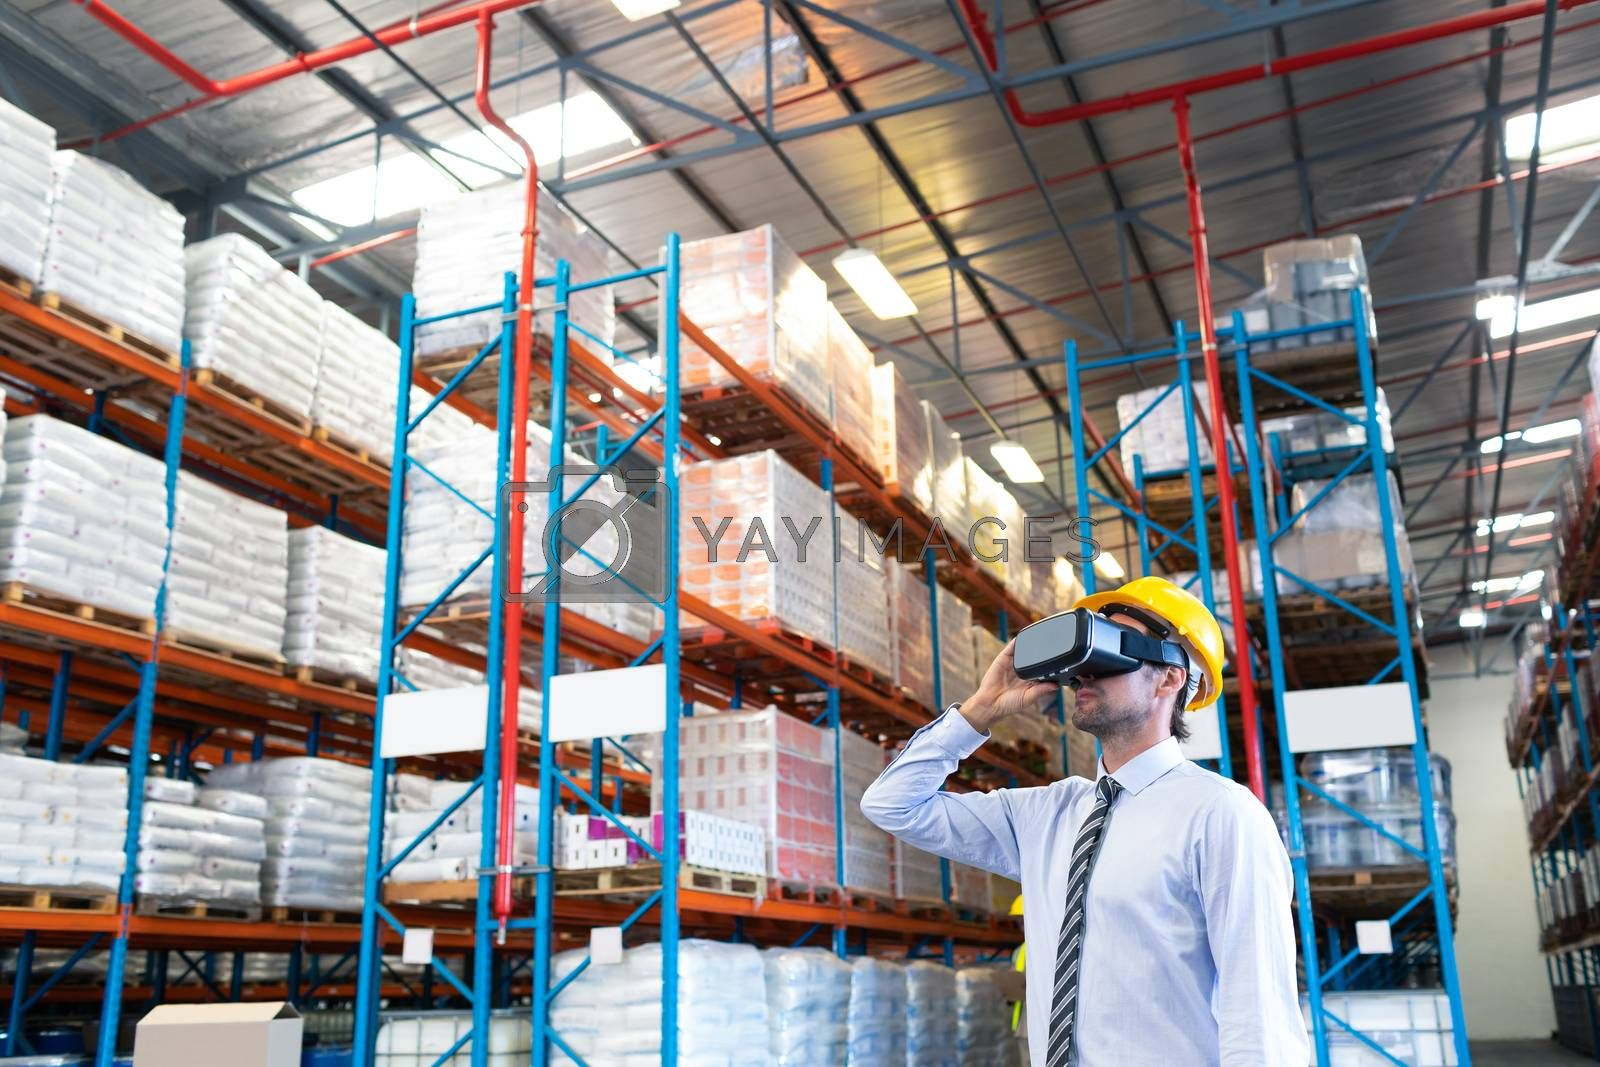 Front view of handsome Caucasian male supervisor using virtual reality headset in warehouse. This is a freight transportation and distribution warehouse. Industrial and industrial workers concept